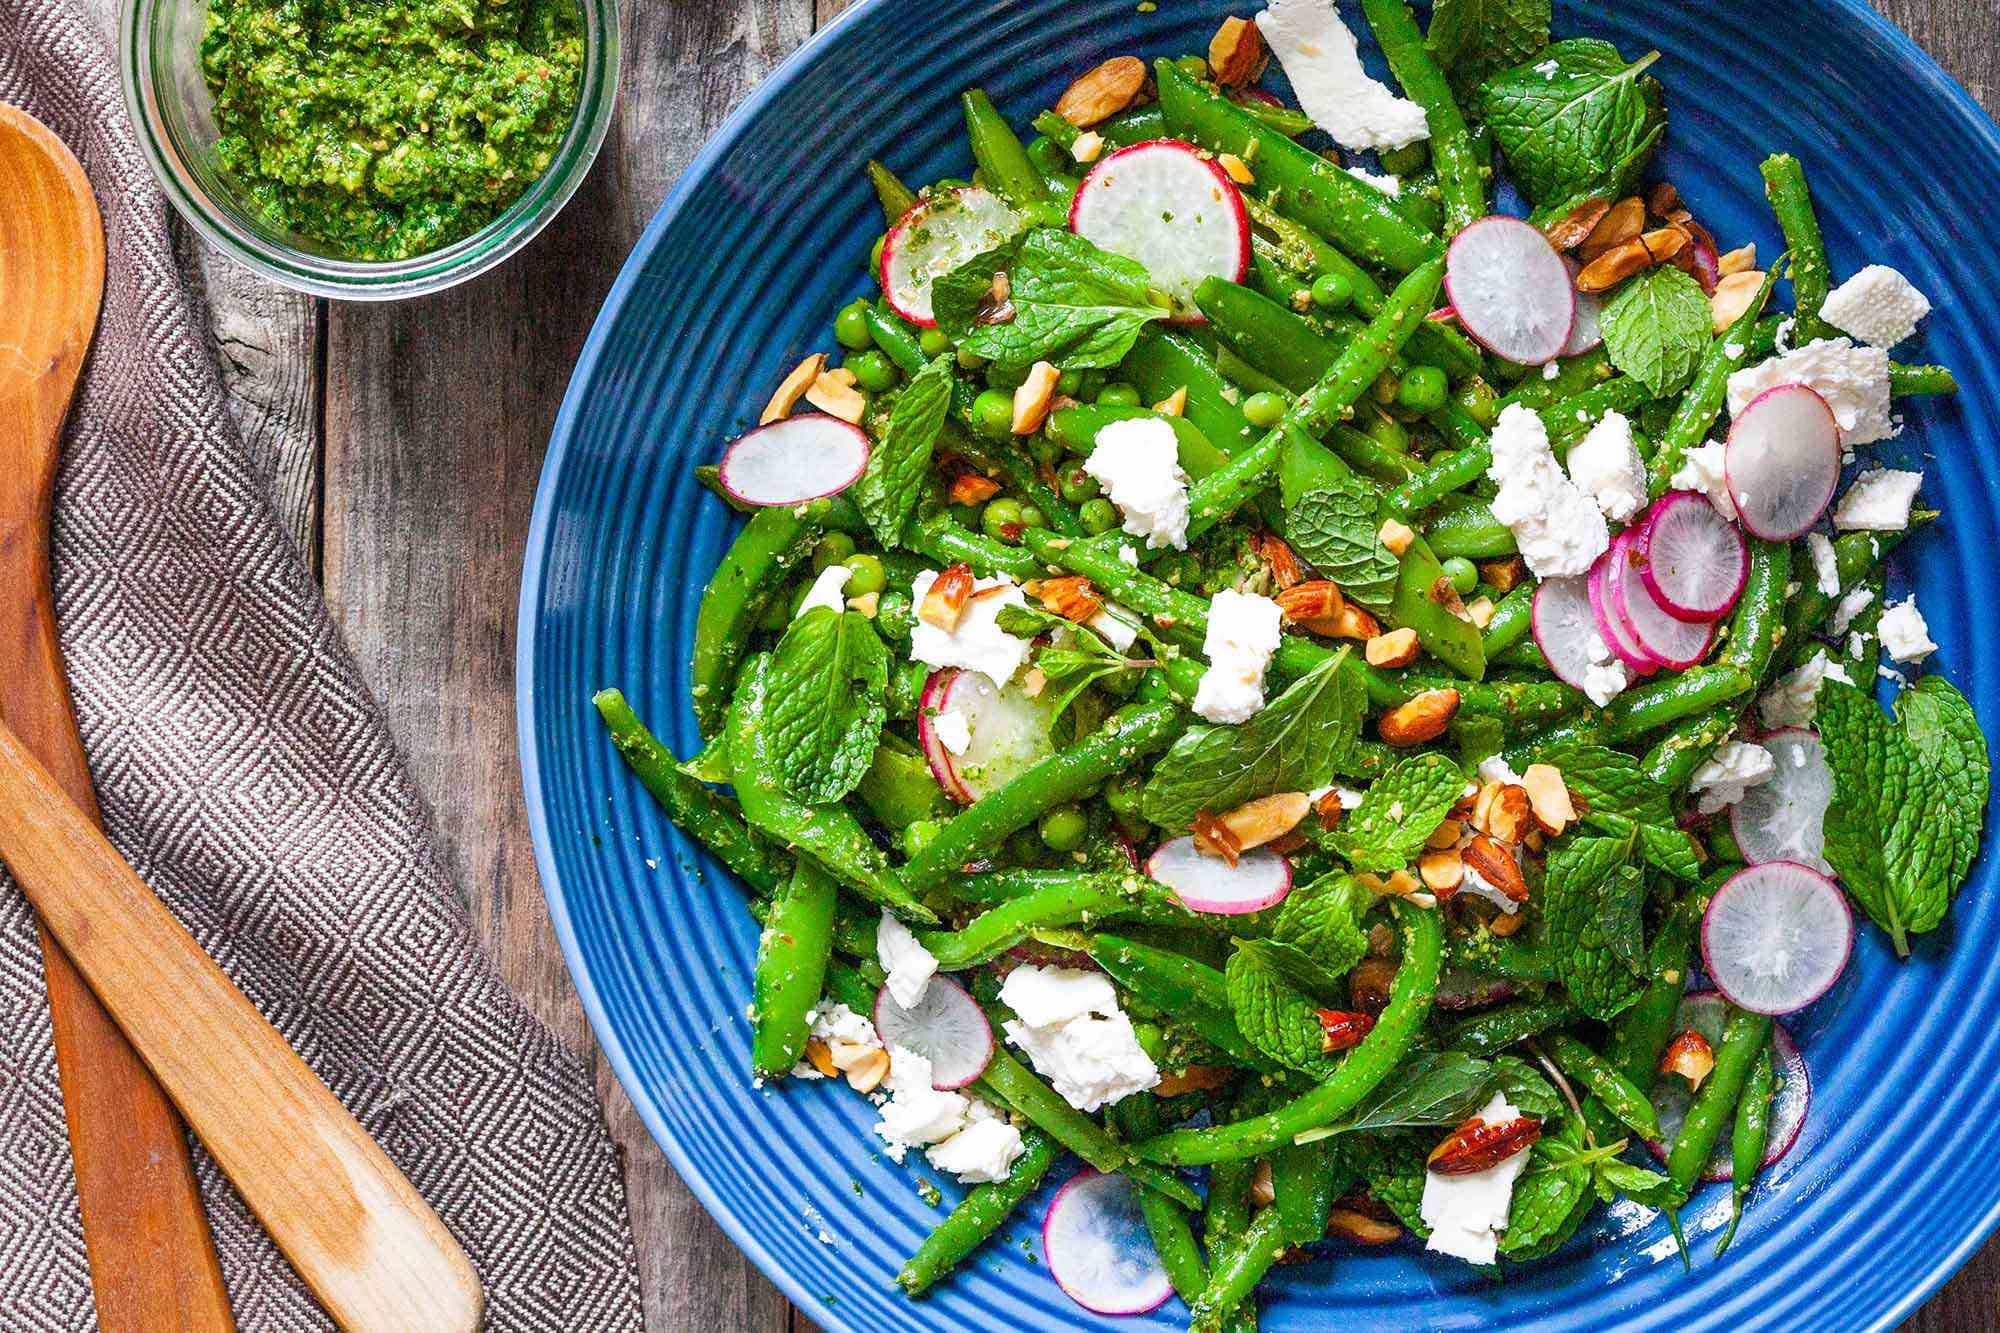 Spring Salad with Radishes - blue bowl with a salad of green beans, radish and on a wood table.